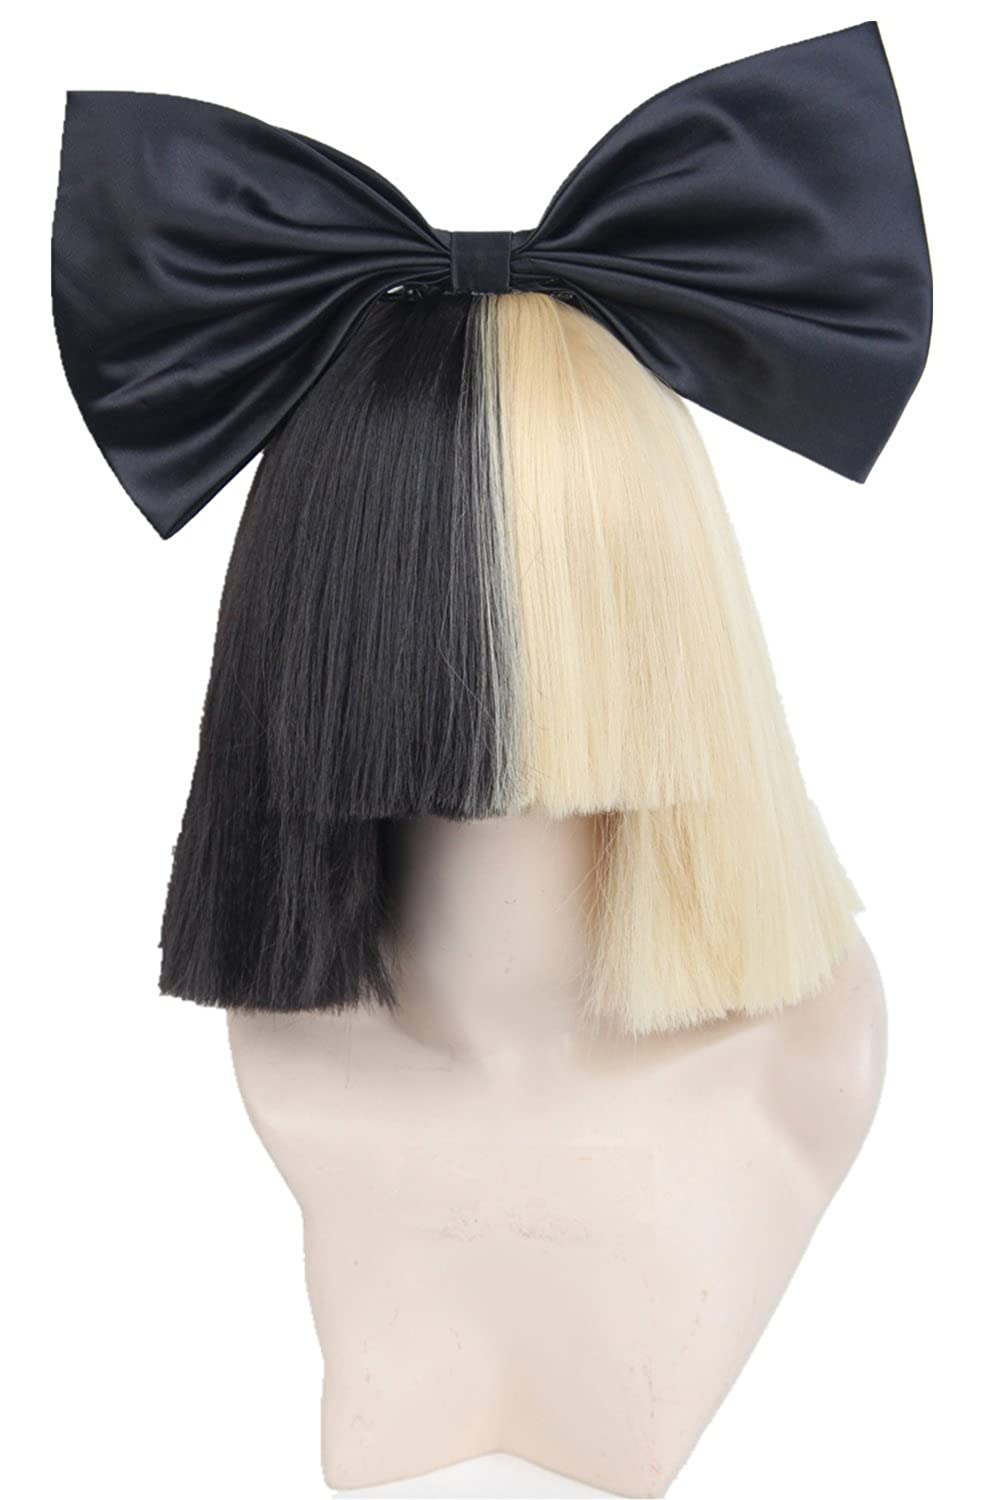 Half Blonde and Black 2 Tone Hair Short Straight Cosplay Costume Wig for Women (wig and bow) Topcosplay